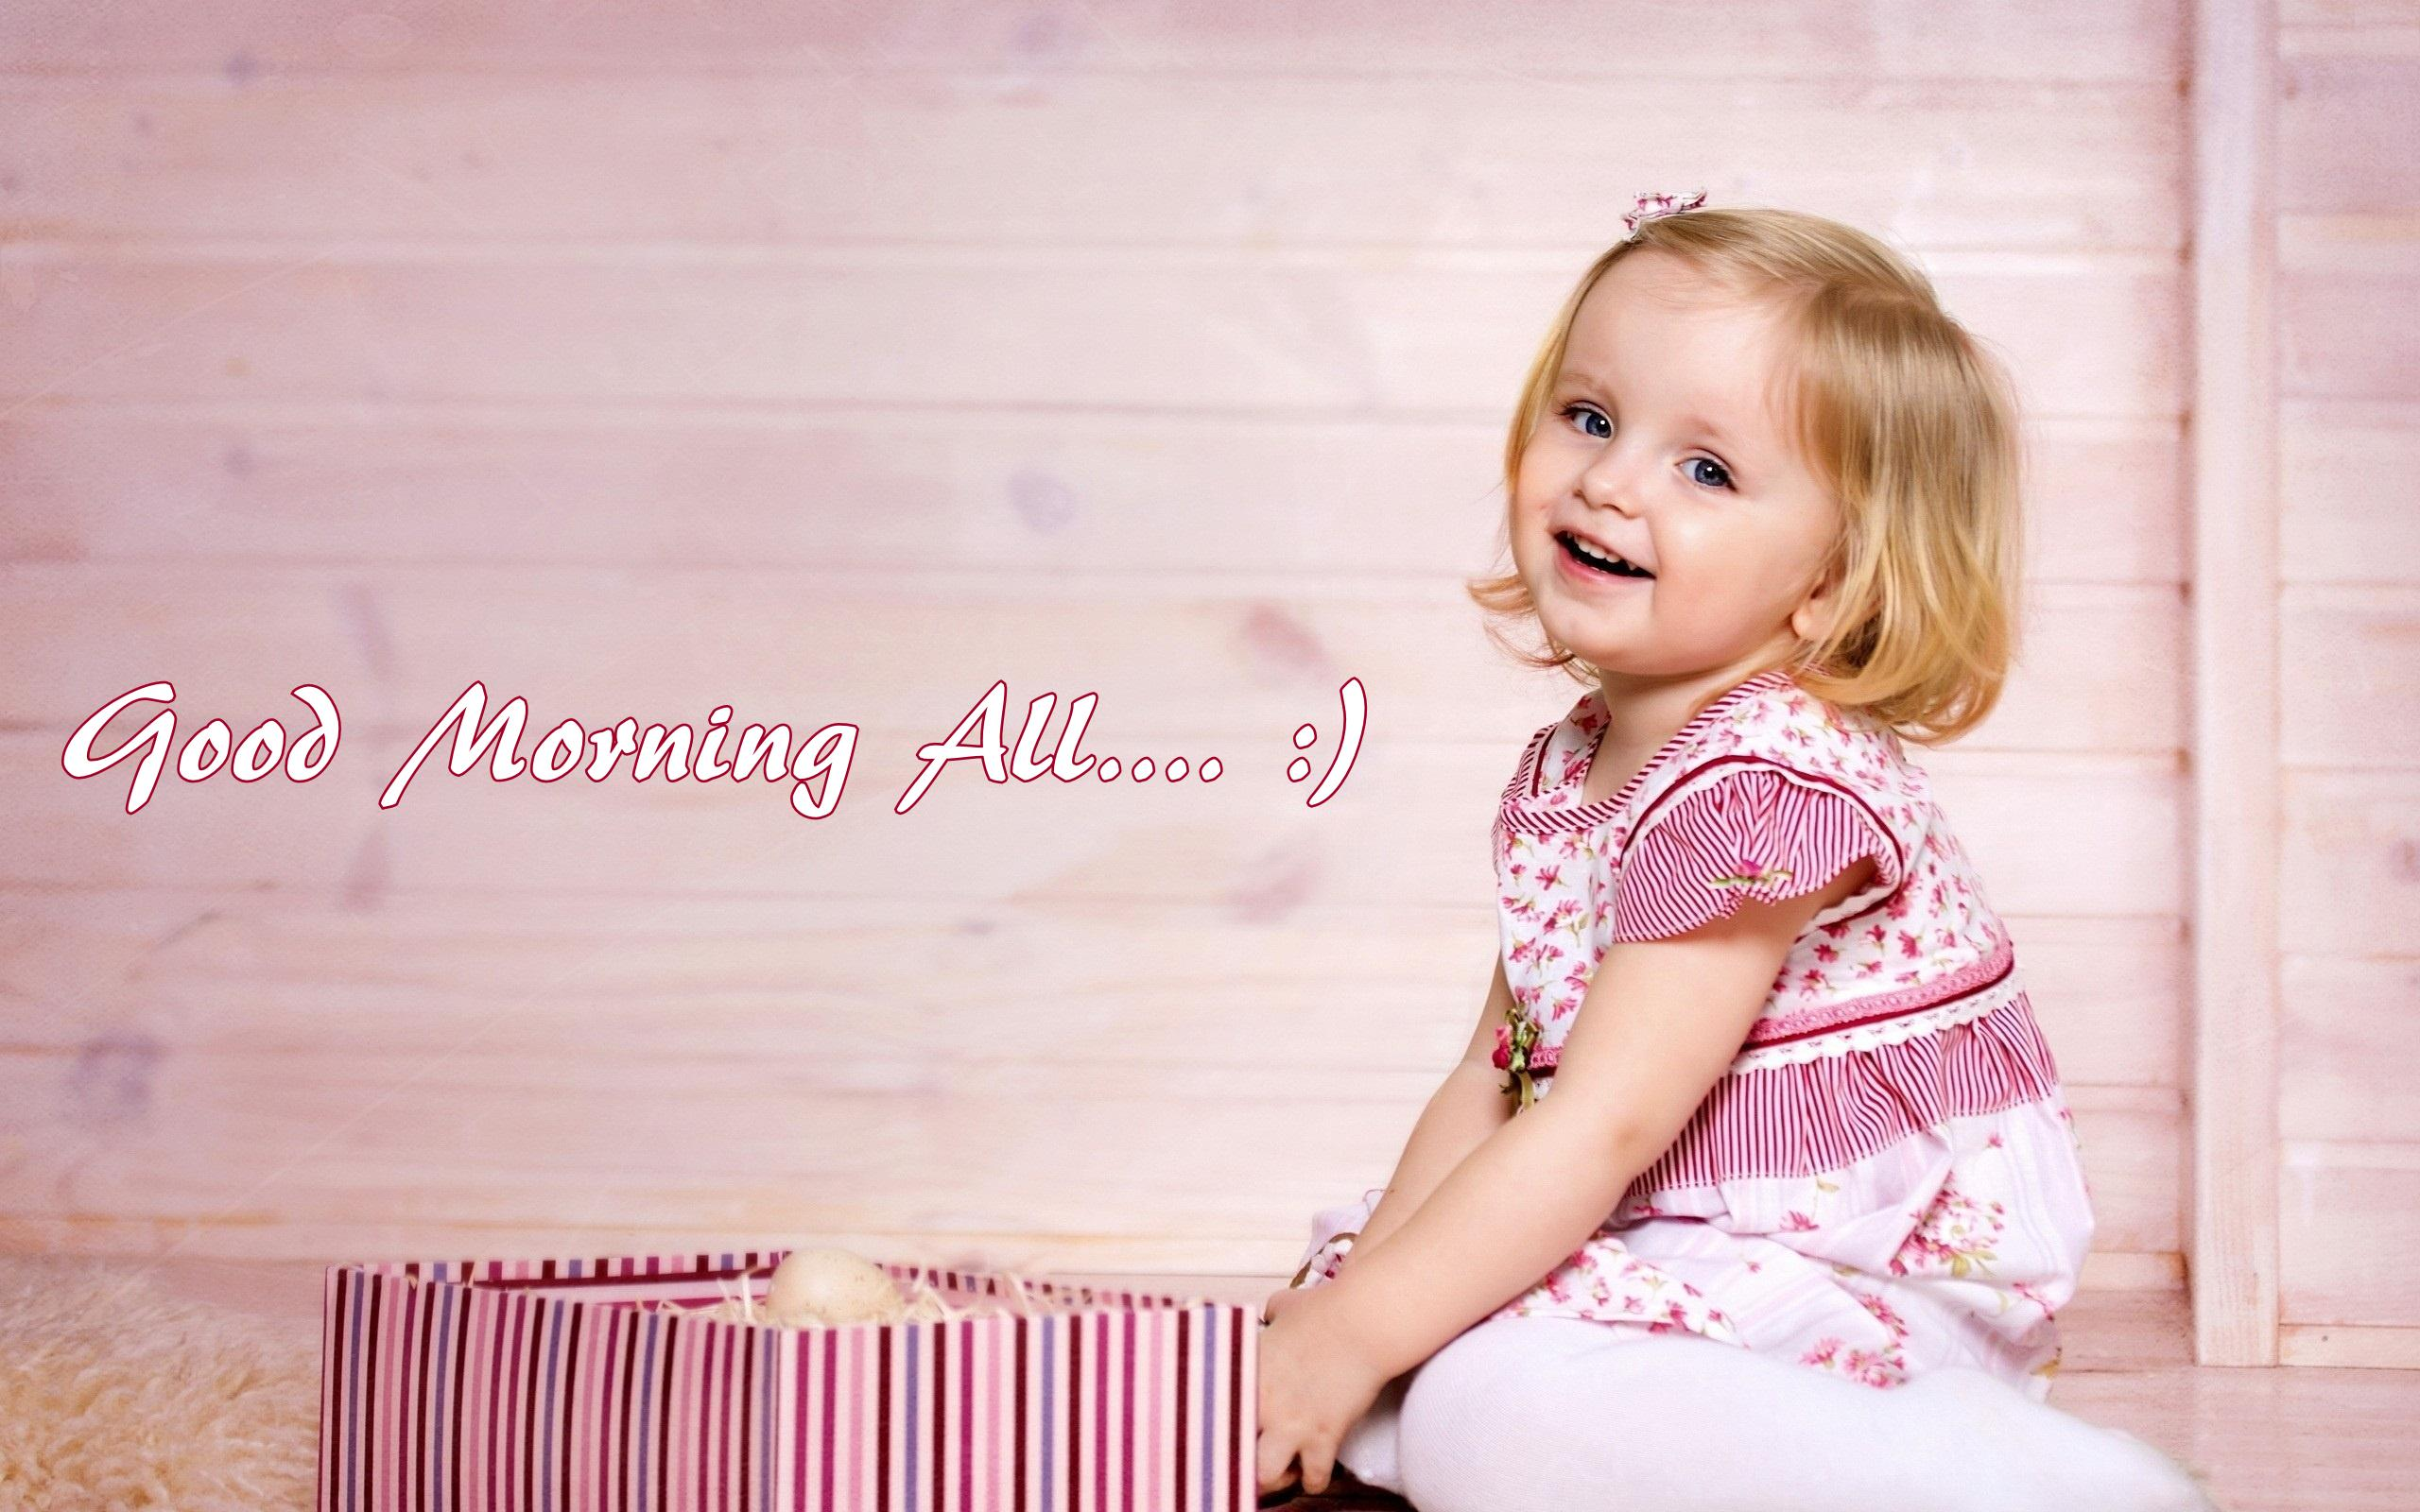 Good Morning Images With Sweet Baby Funny Gif